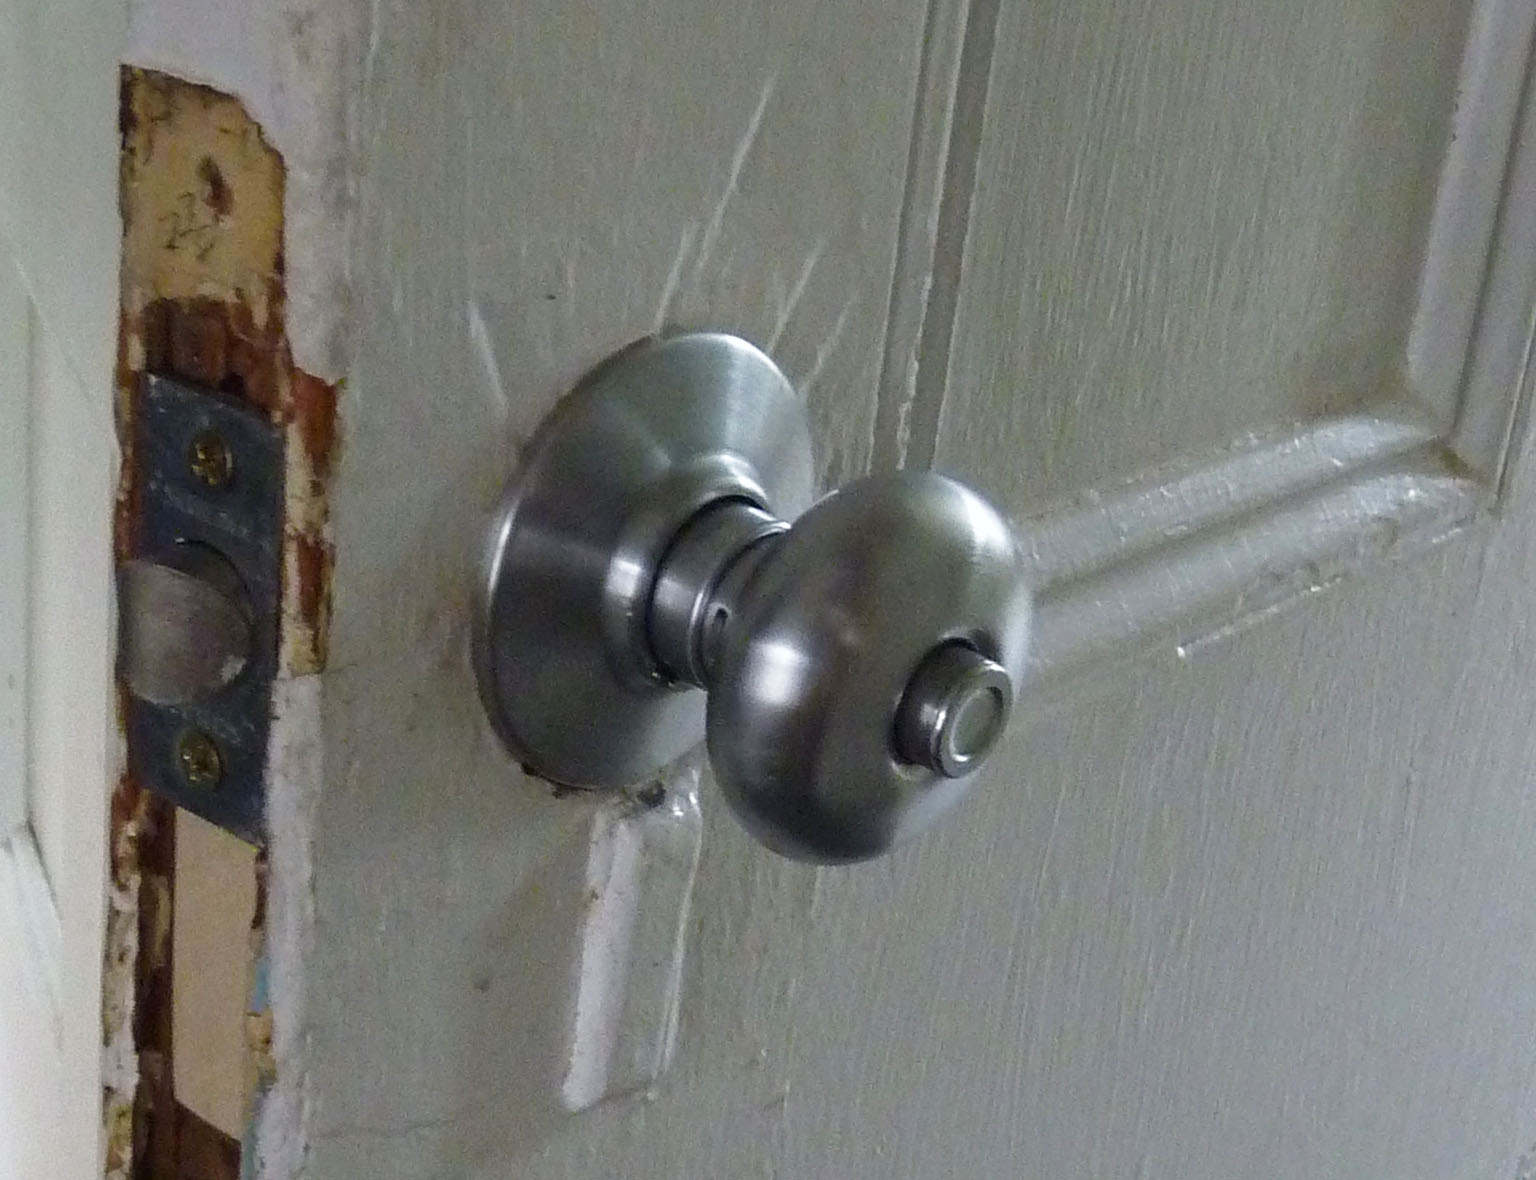 Door hardware from the Reuse Center